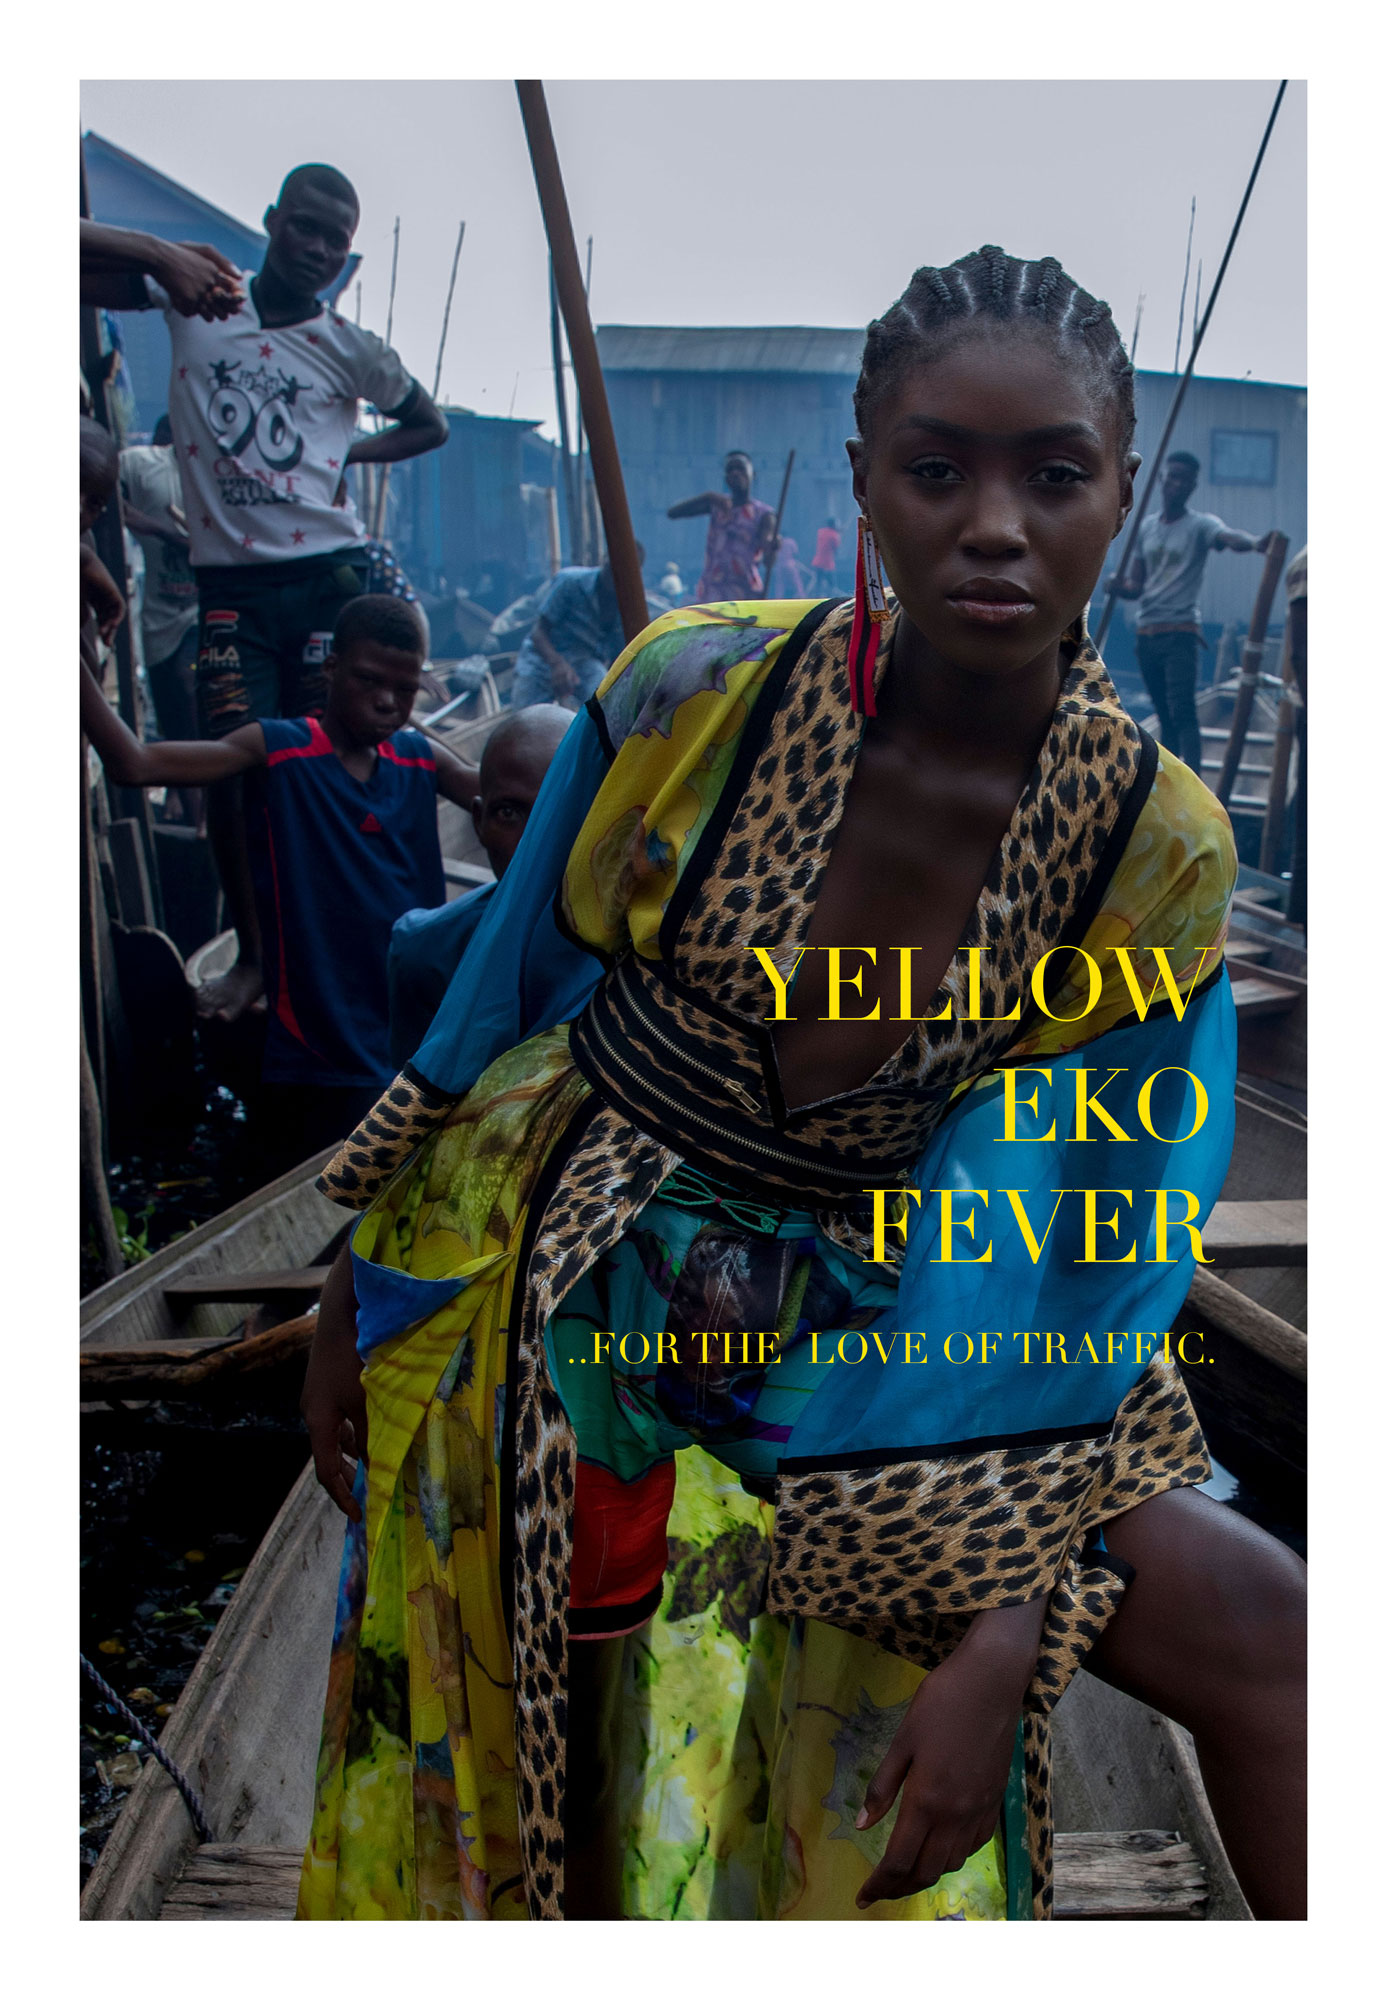 YELLOW EKO FEVER… for the love of traffic